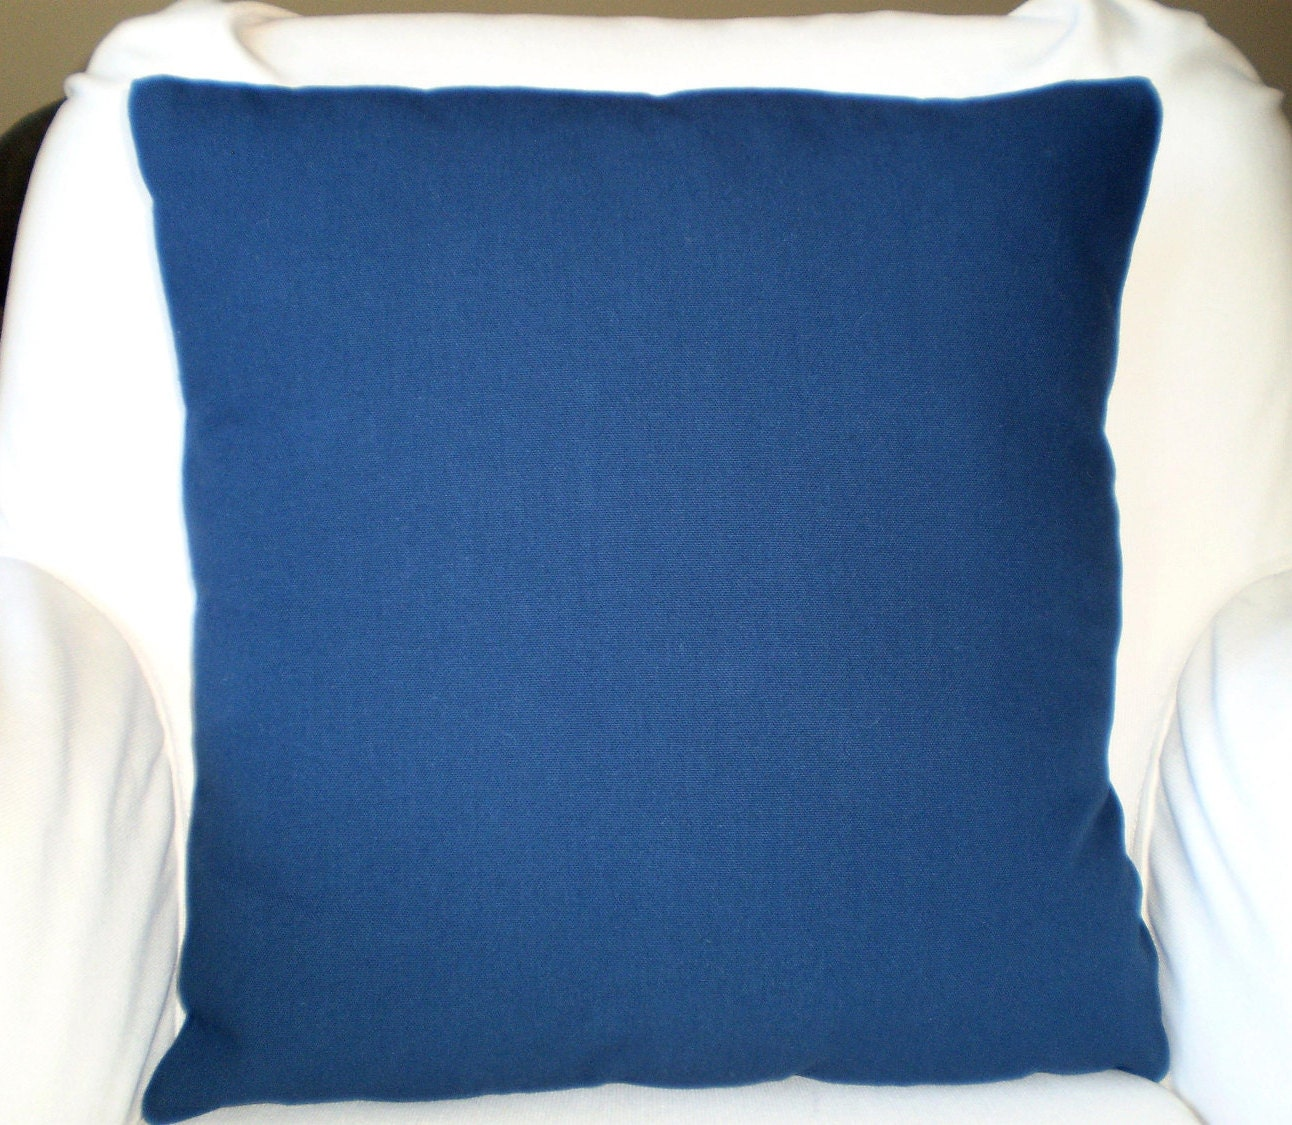 Navy Blue Throw Pillow Covers : Solid Navy Blue Pillow Cover Decorative by PillowCushionCovers